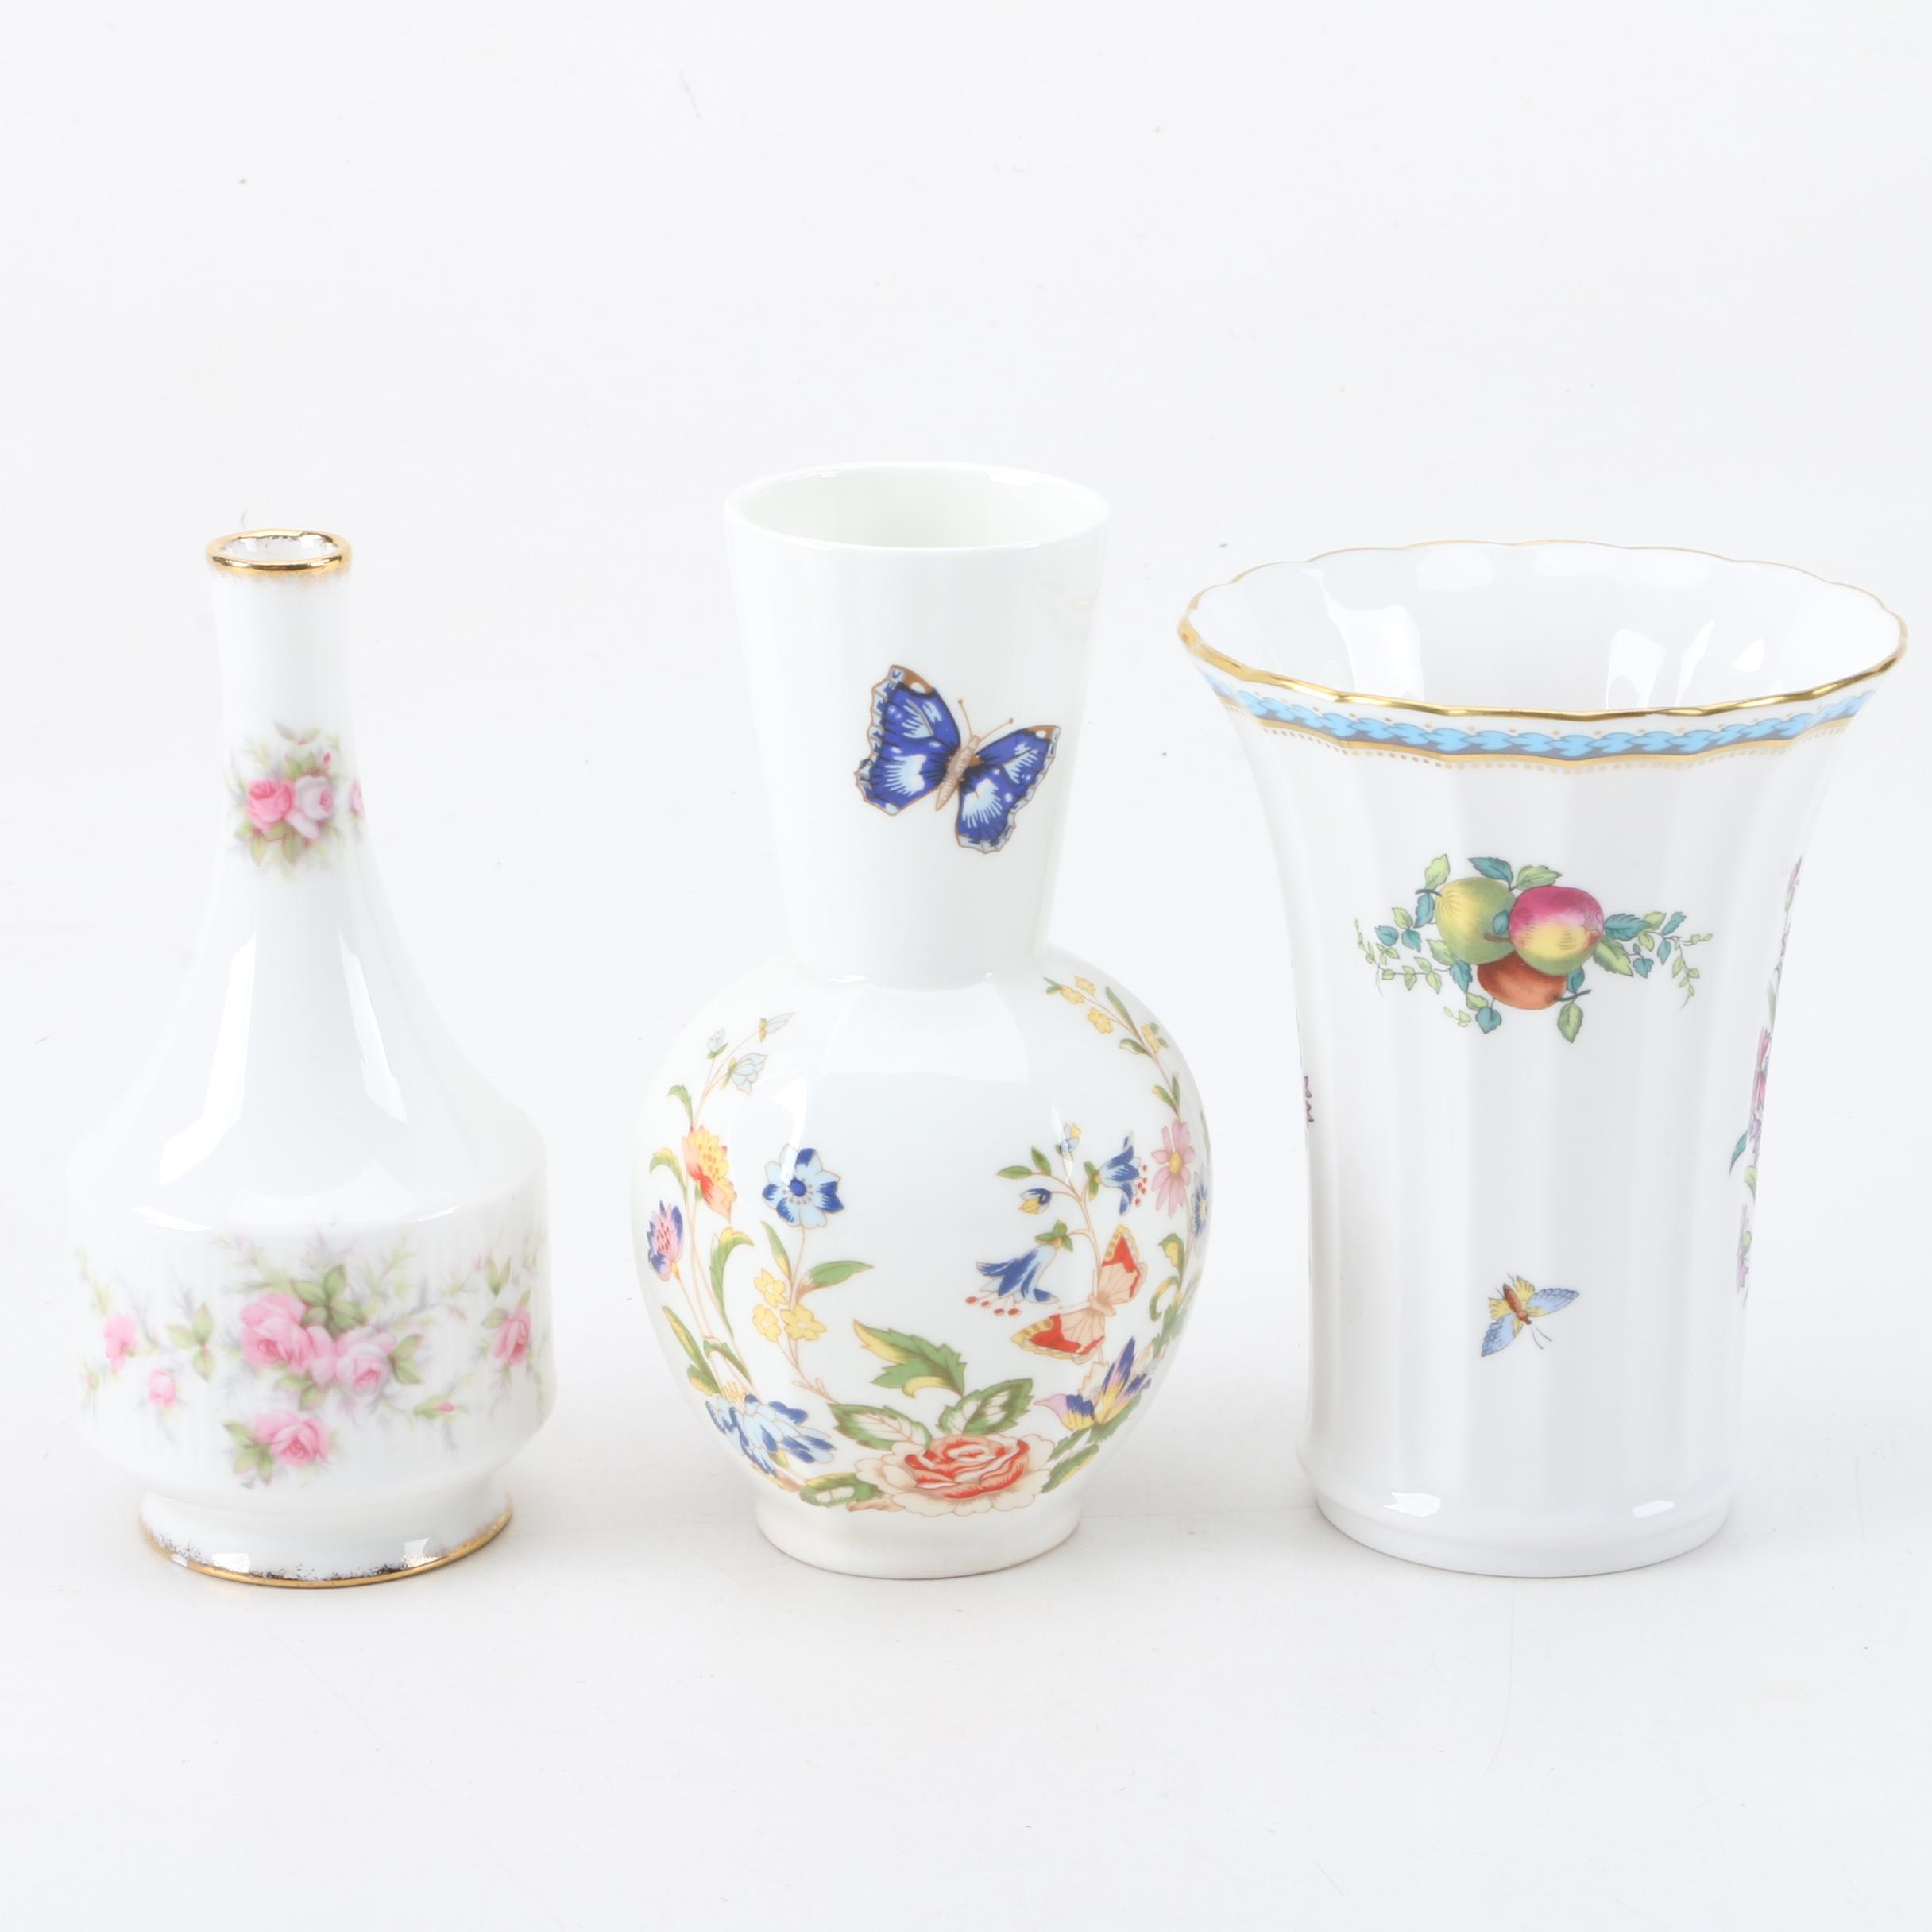 Vintage China Vase Assortment Featuring Spode